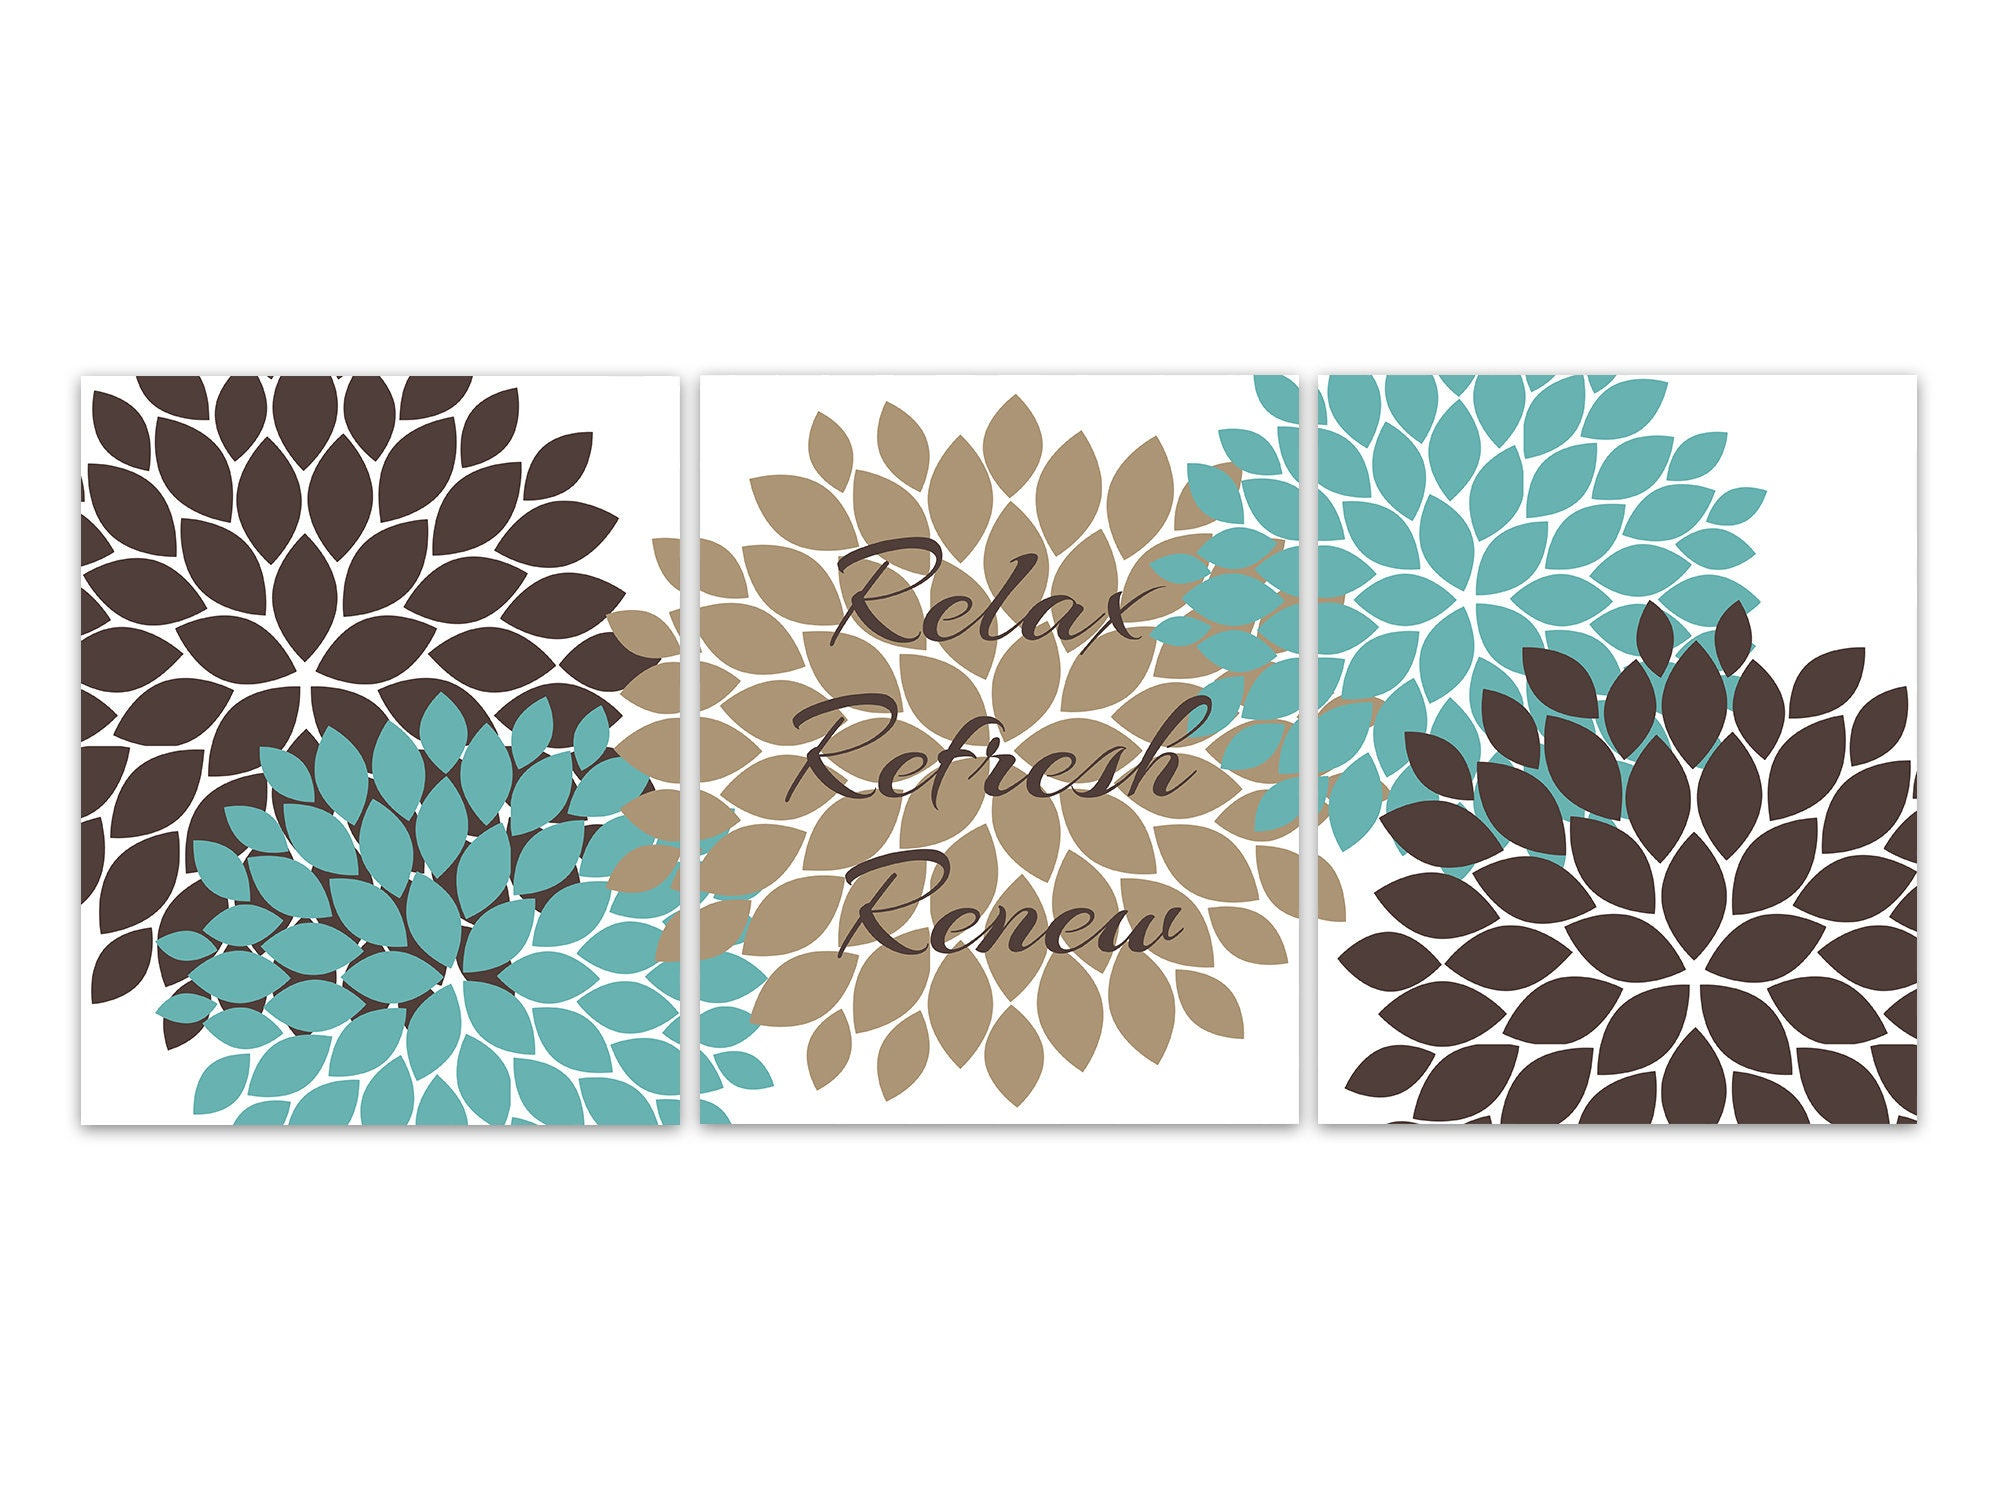 Bathroom wall art relax refresh renew canvas teal and brown